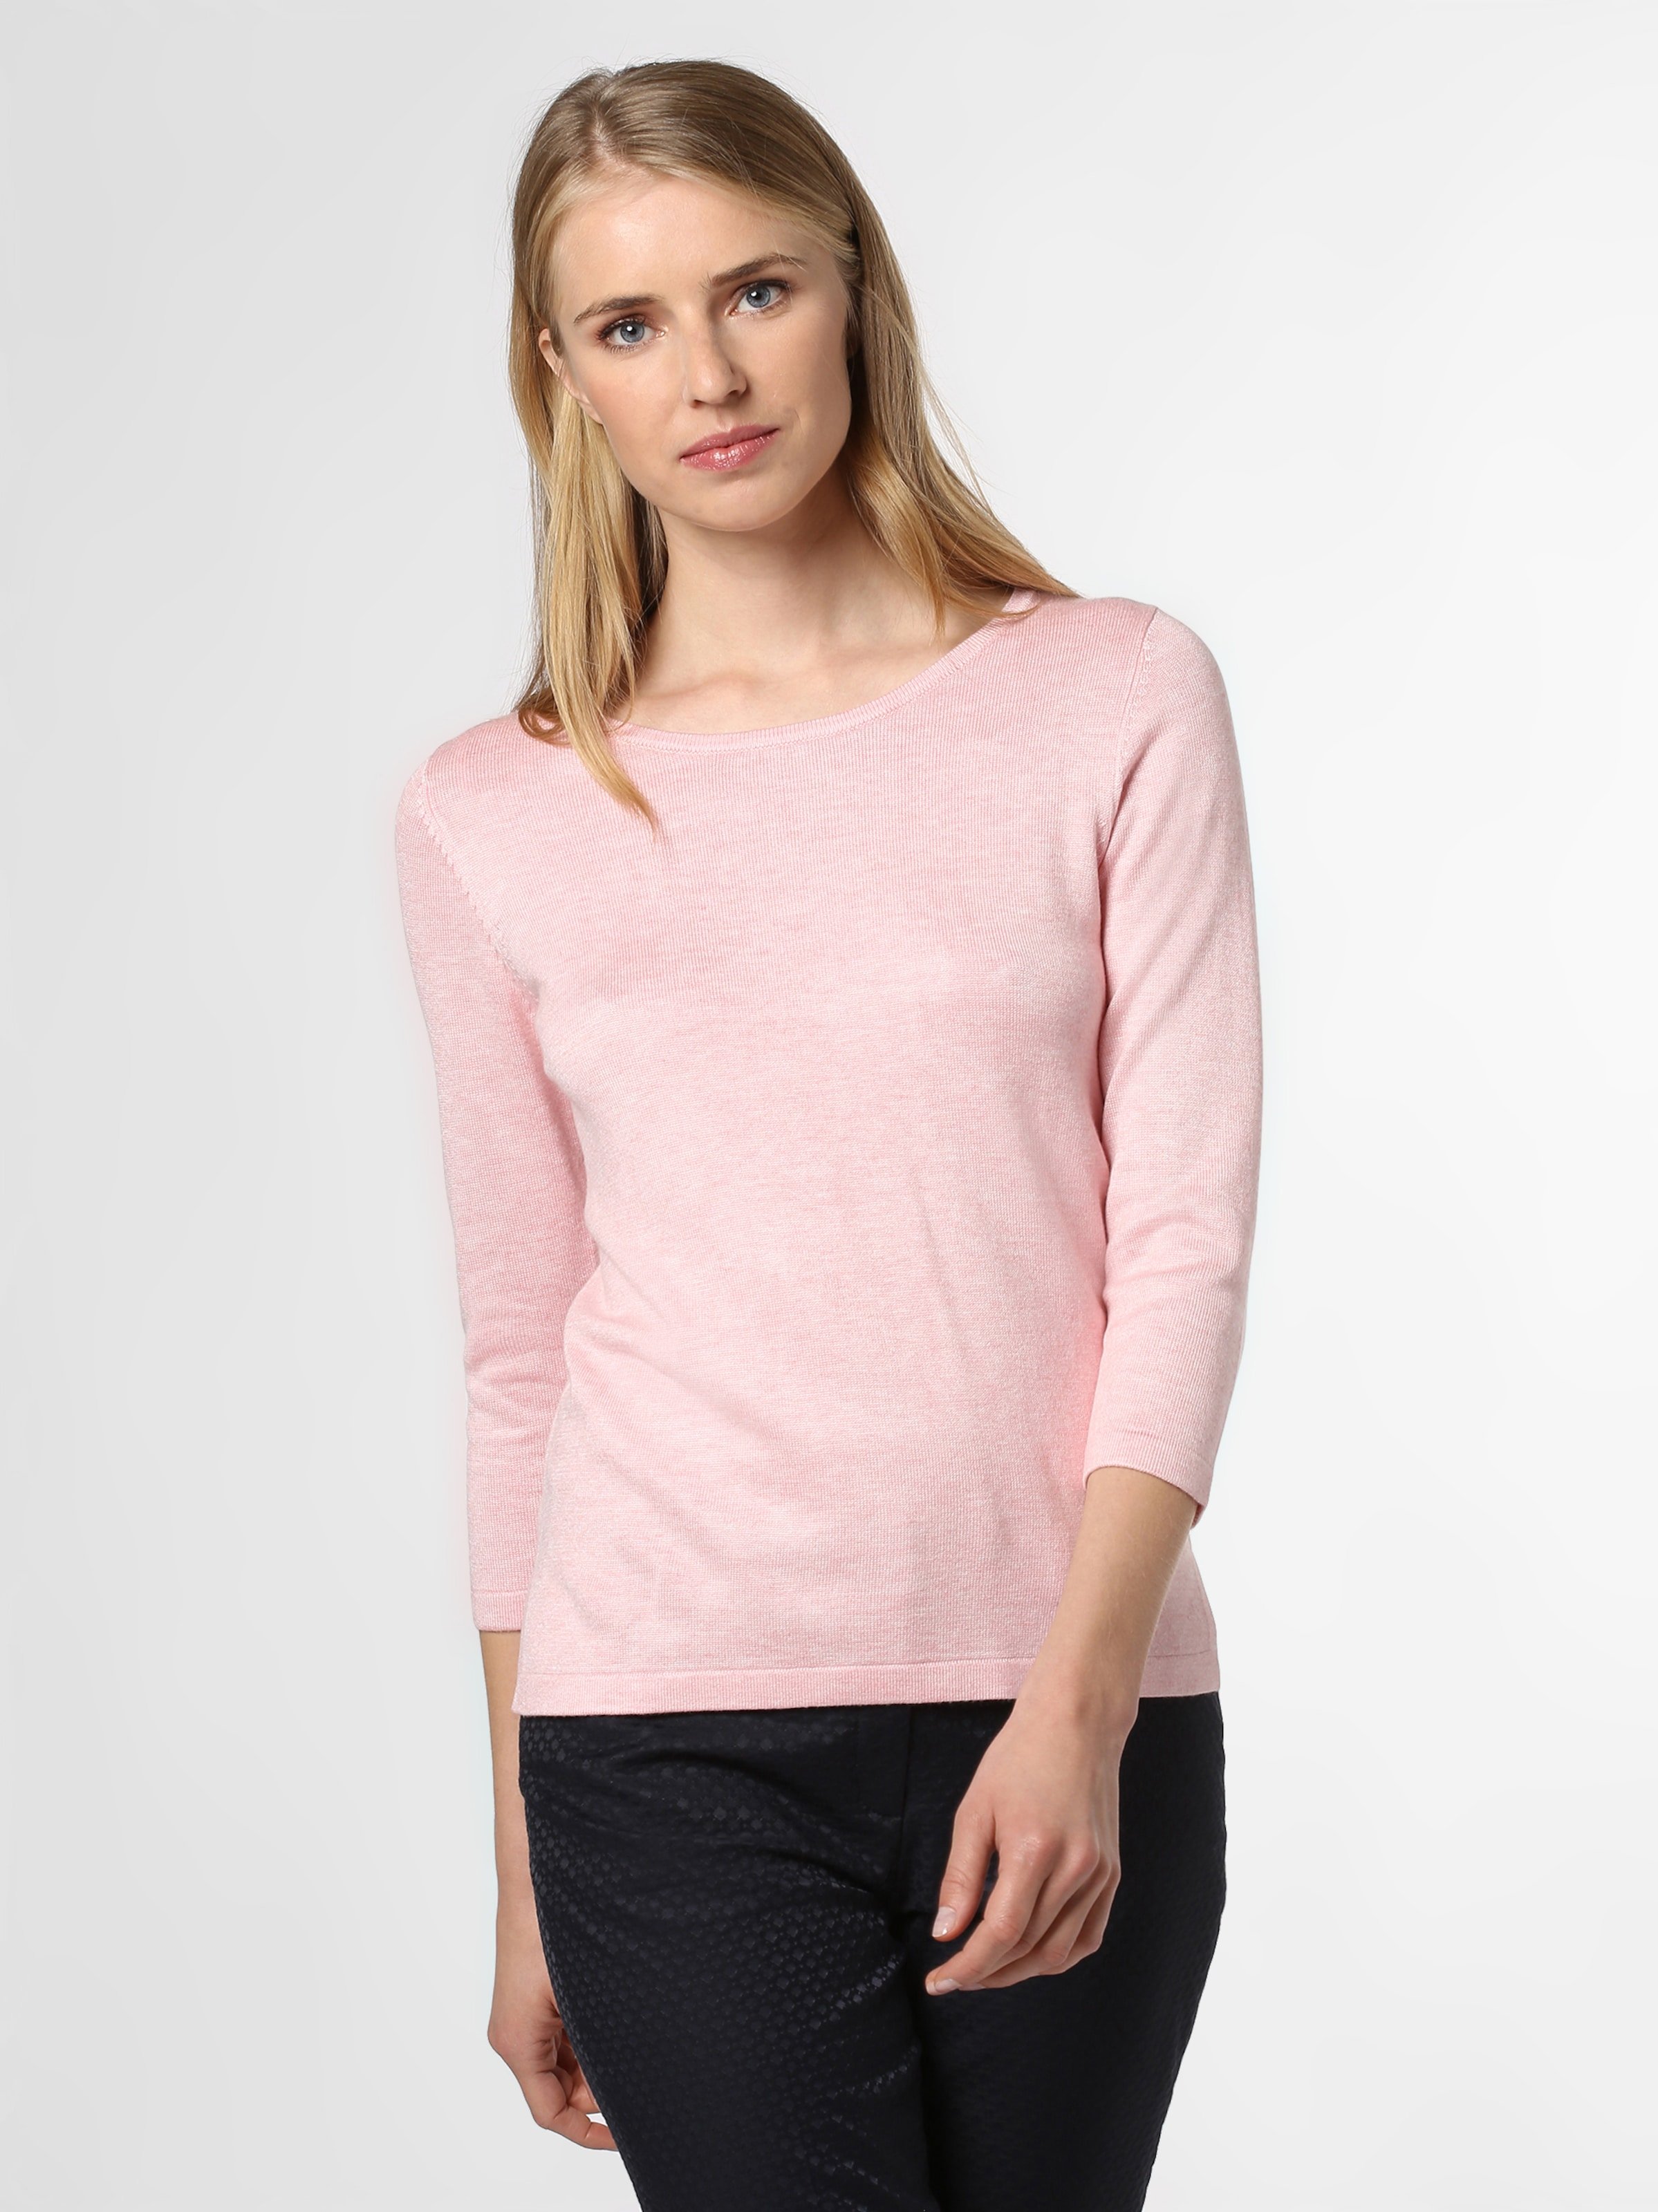 Pullover Pullover Marie Rosa In Lund Lund Marie YgvI6y7bf